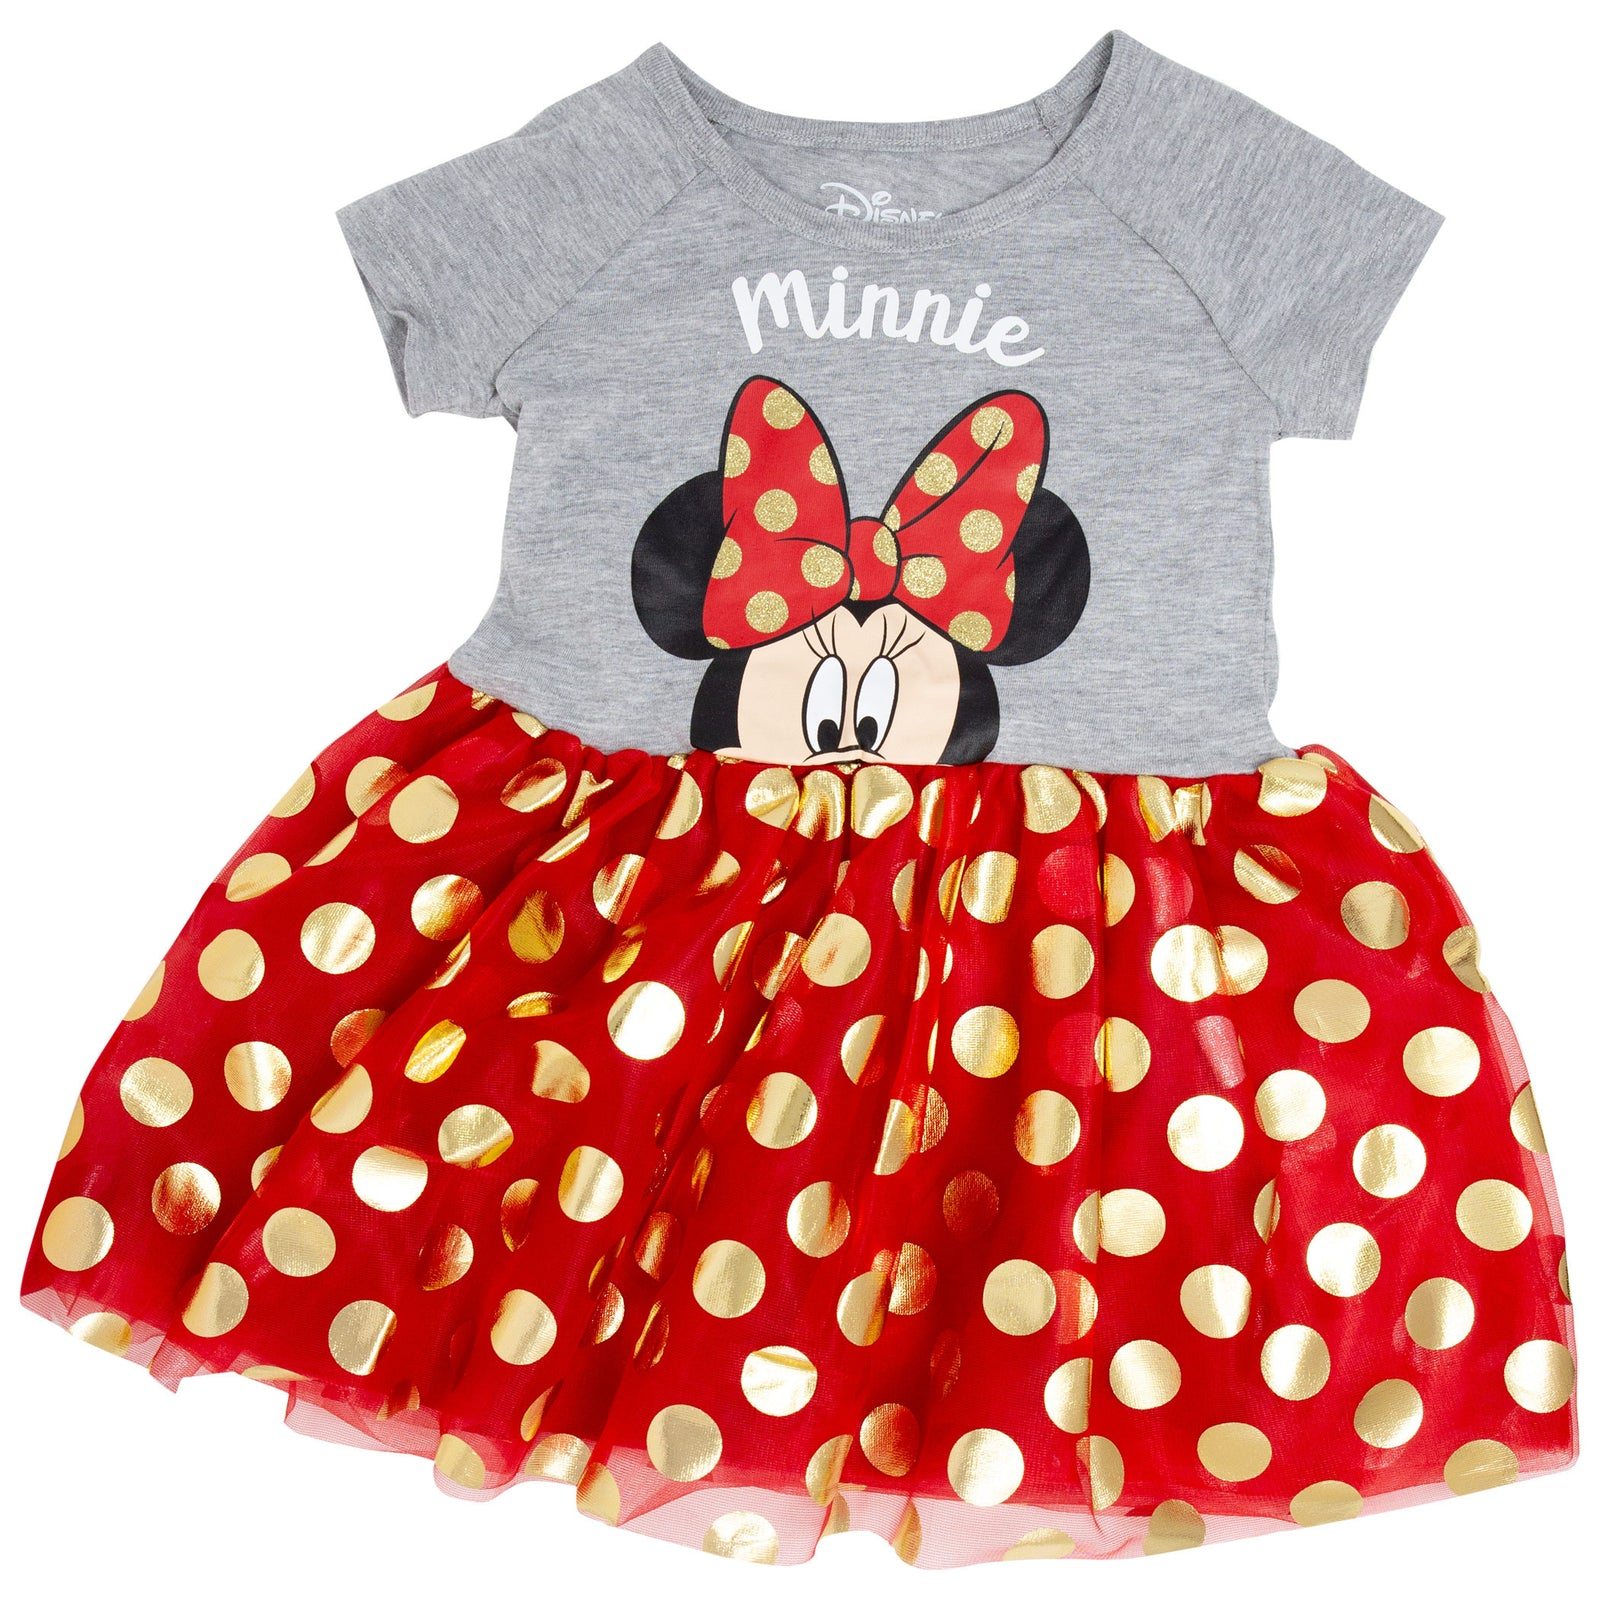 Minnie Mouse Bow Tie Youth Dress